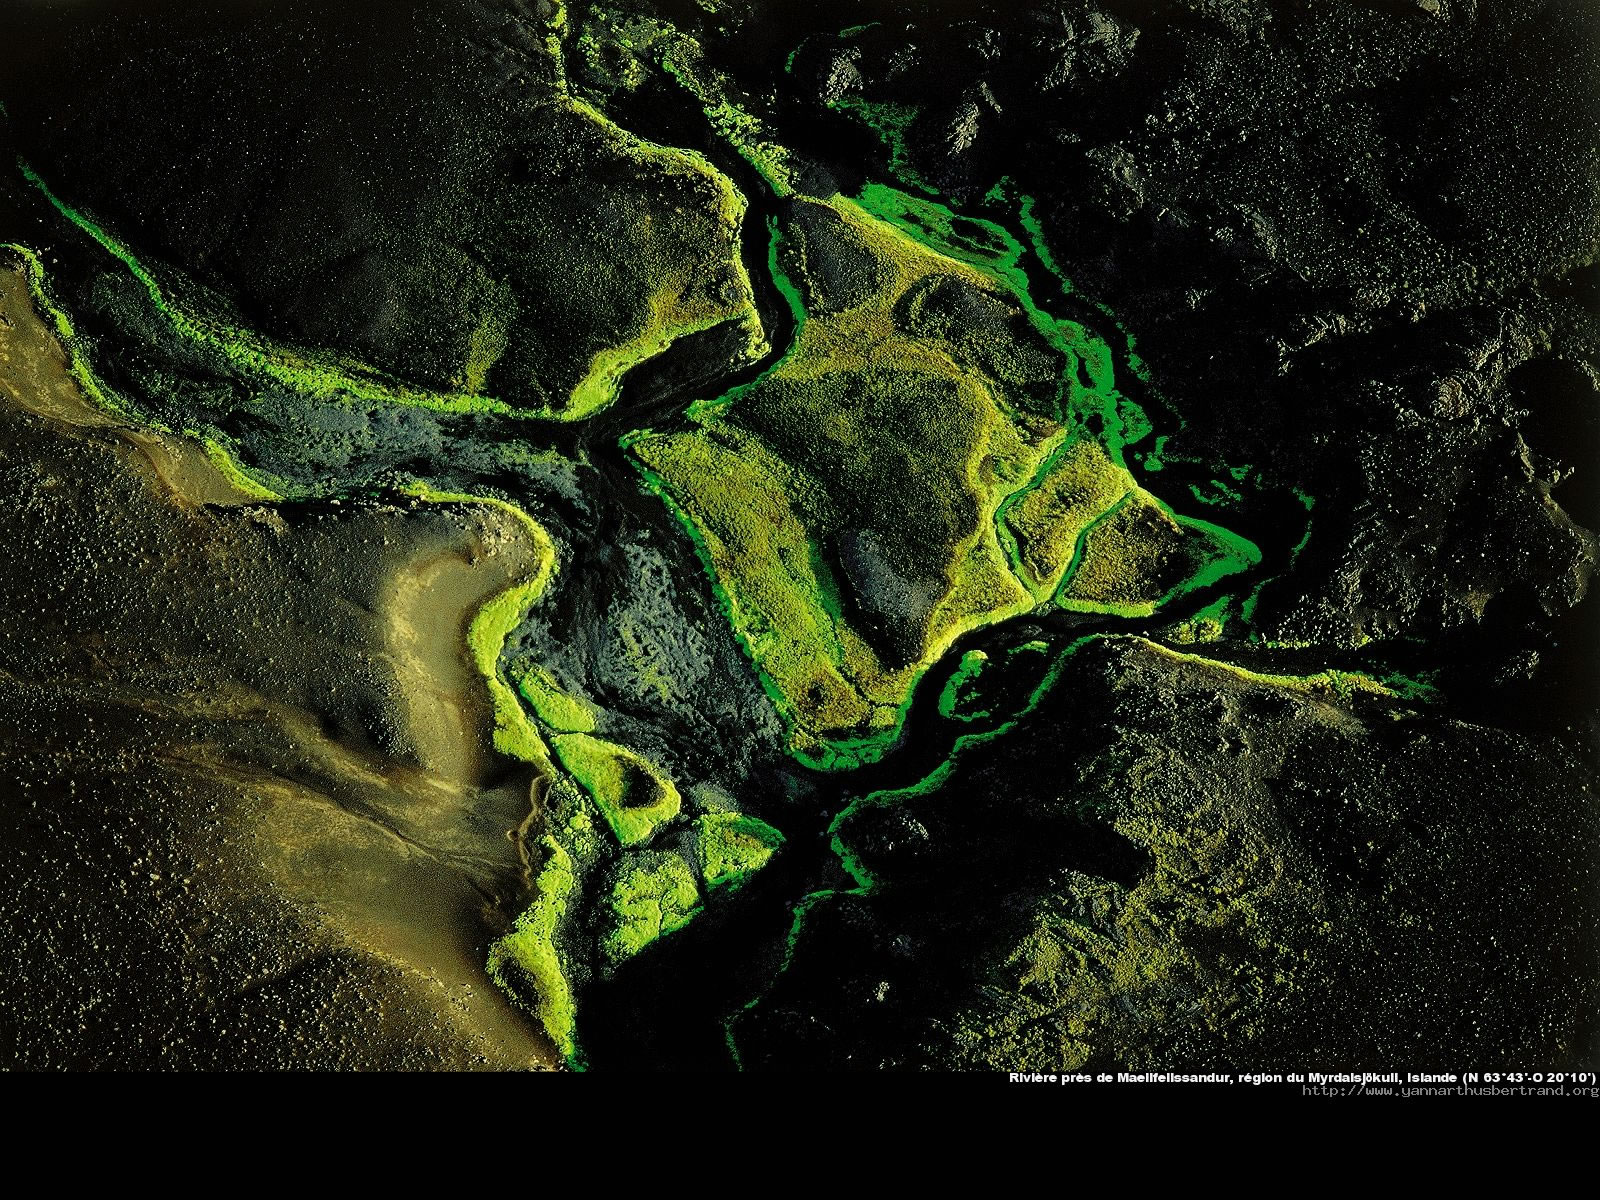 Gallery wallpaper 68 photos de yann arthus bertrand for Fond ecran photo yann arthus bertrand